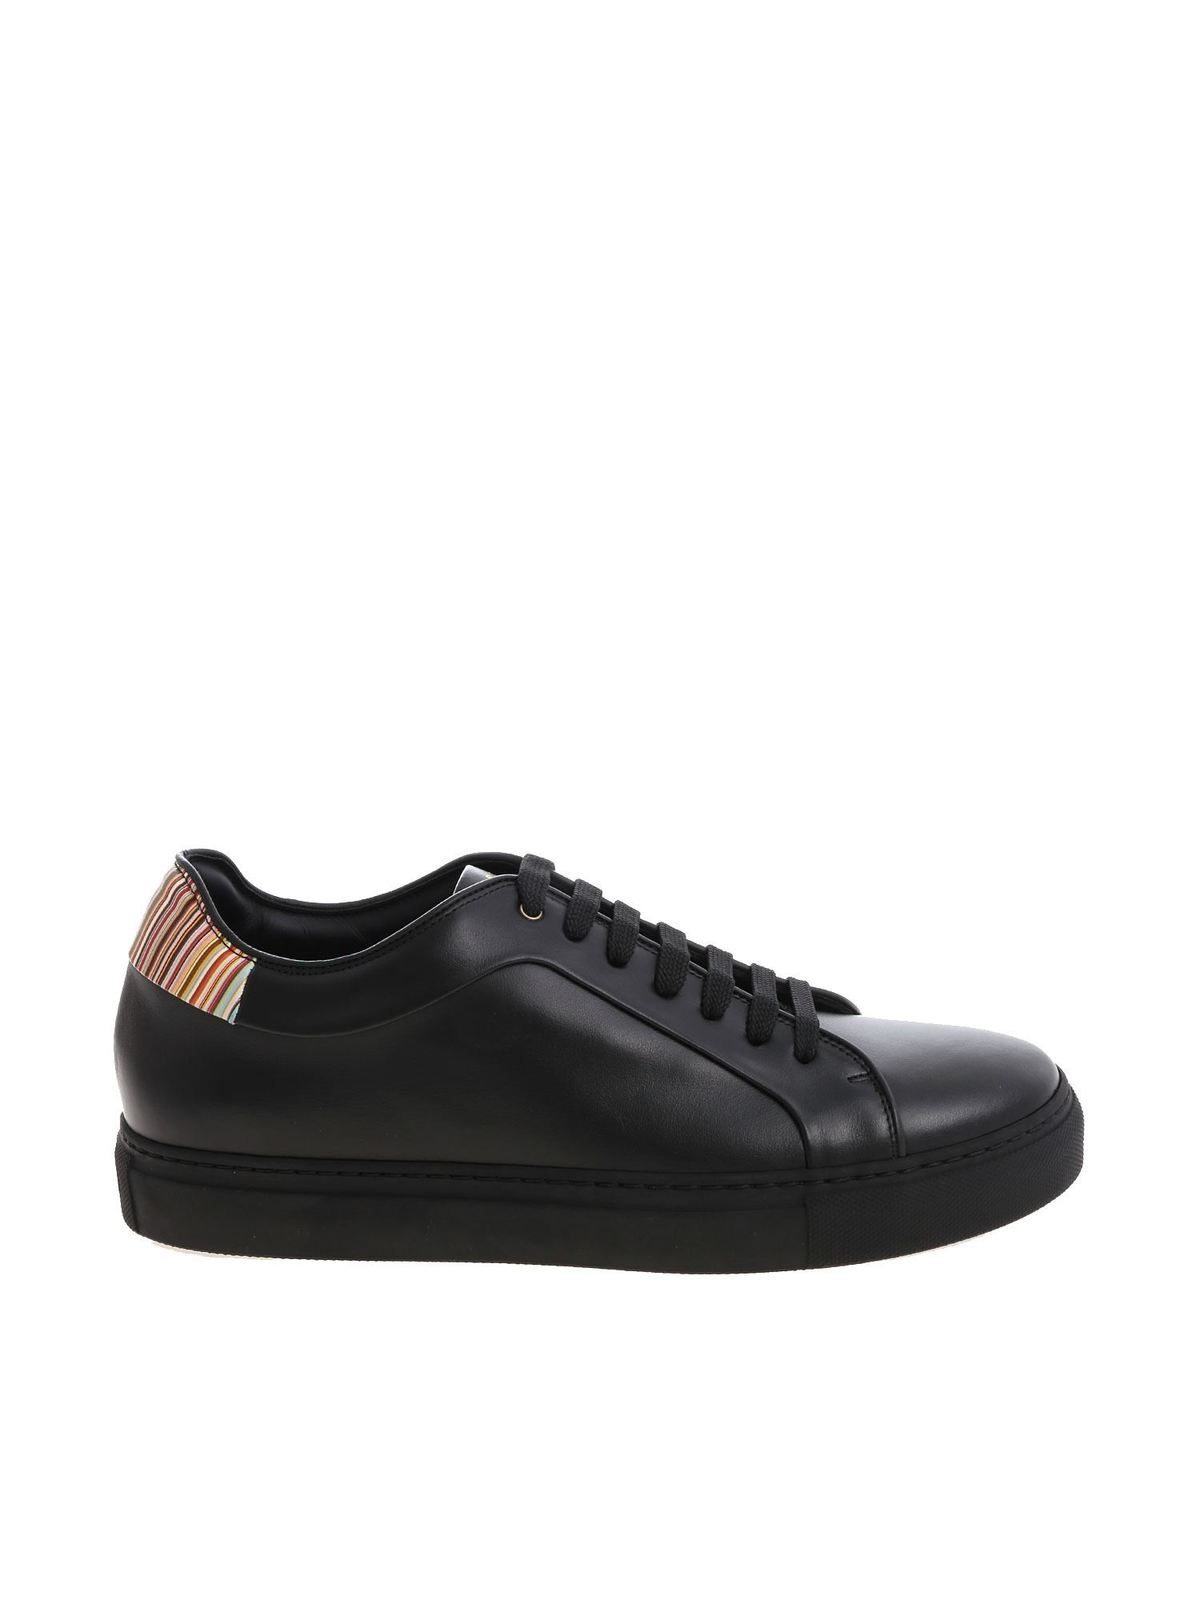 PS BY PAUL SMITH BLACK RAPPID SNEAKERS